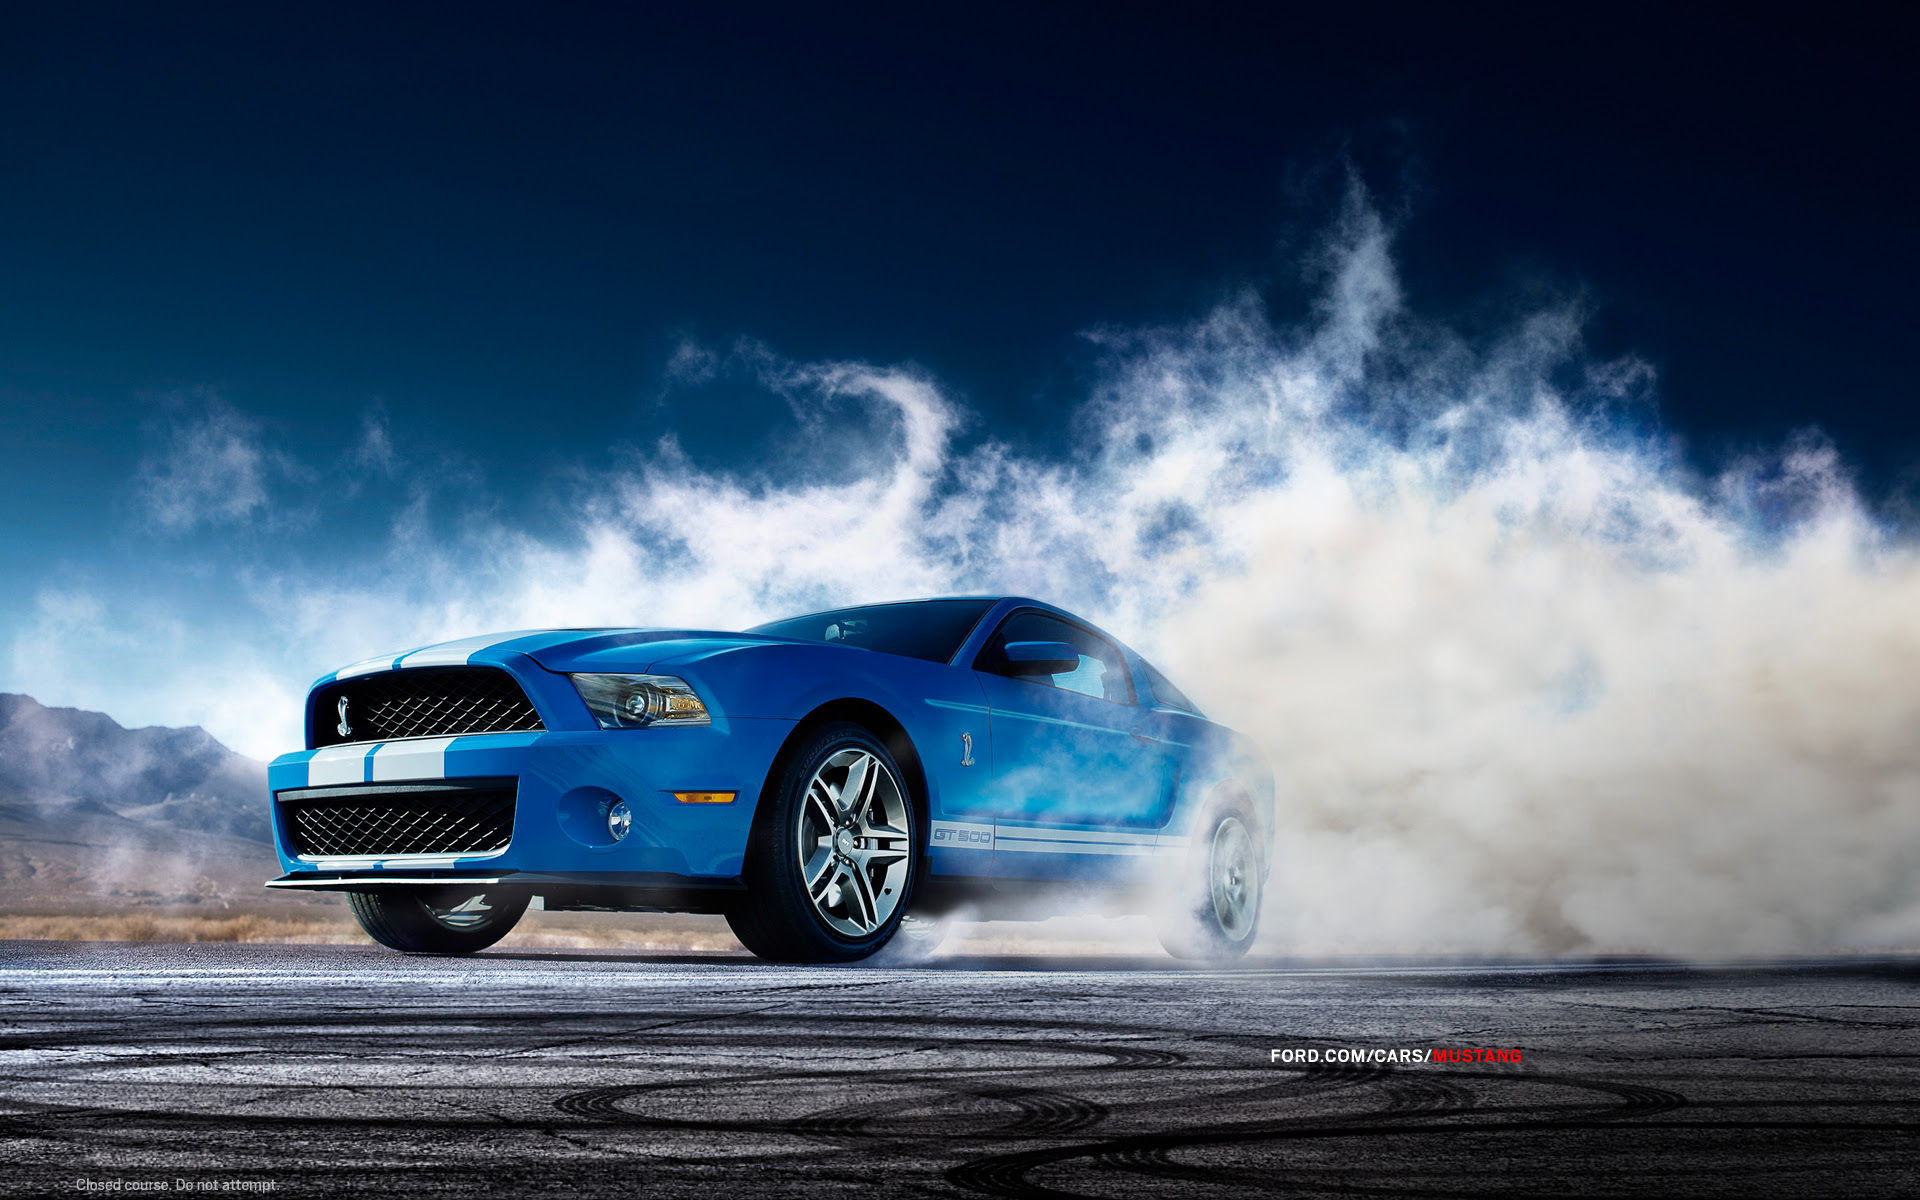 Ford Mustang Hd Wallpapers For Desktop Ford Mustang 2019